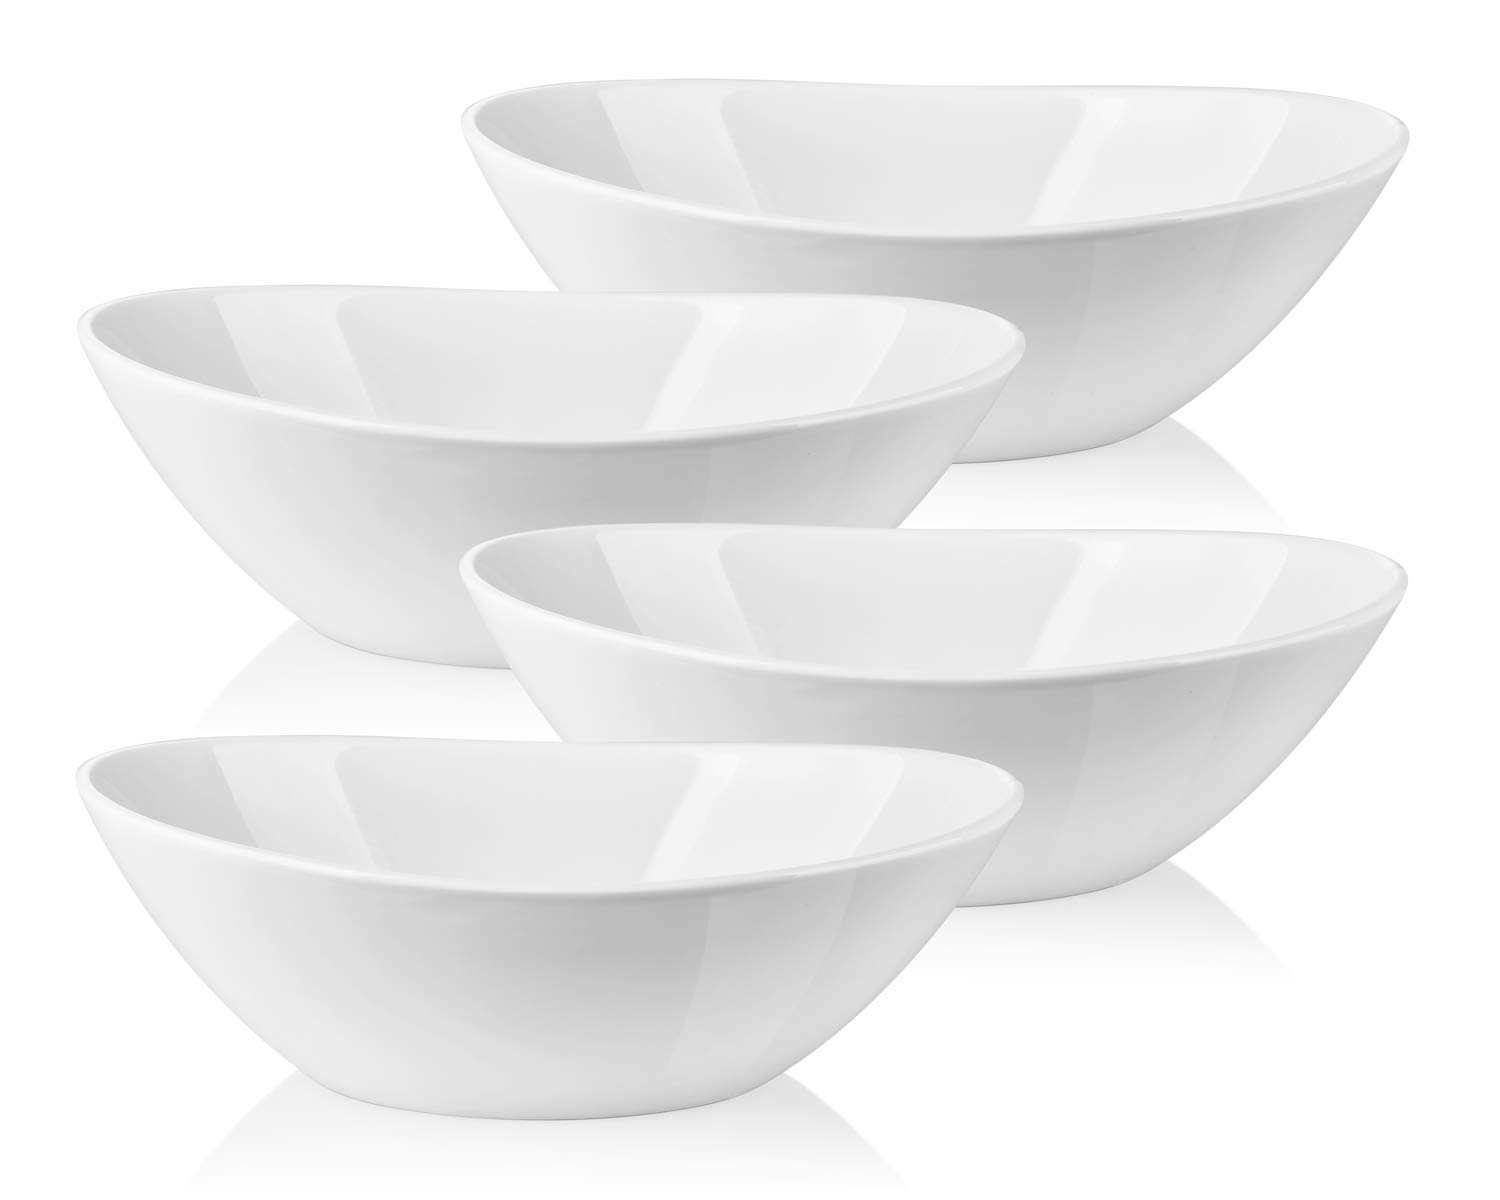 LIFVER 1.1 Quart Porcelain Serving Bowls for Salad, Side dishes, Soup, Dessert, Set of 4, White by LIFVER